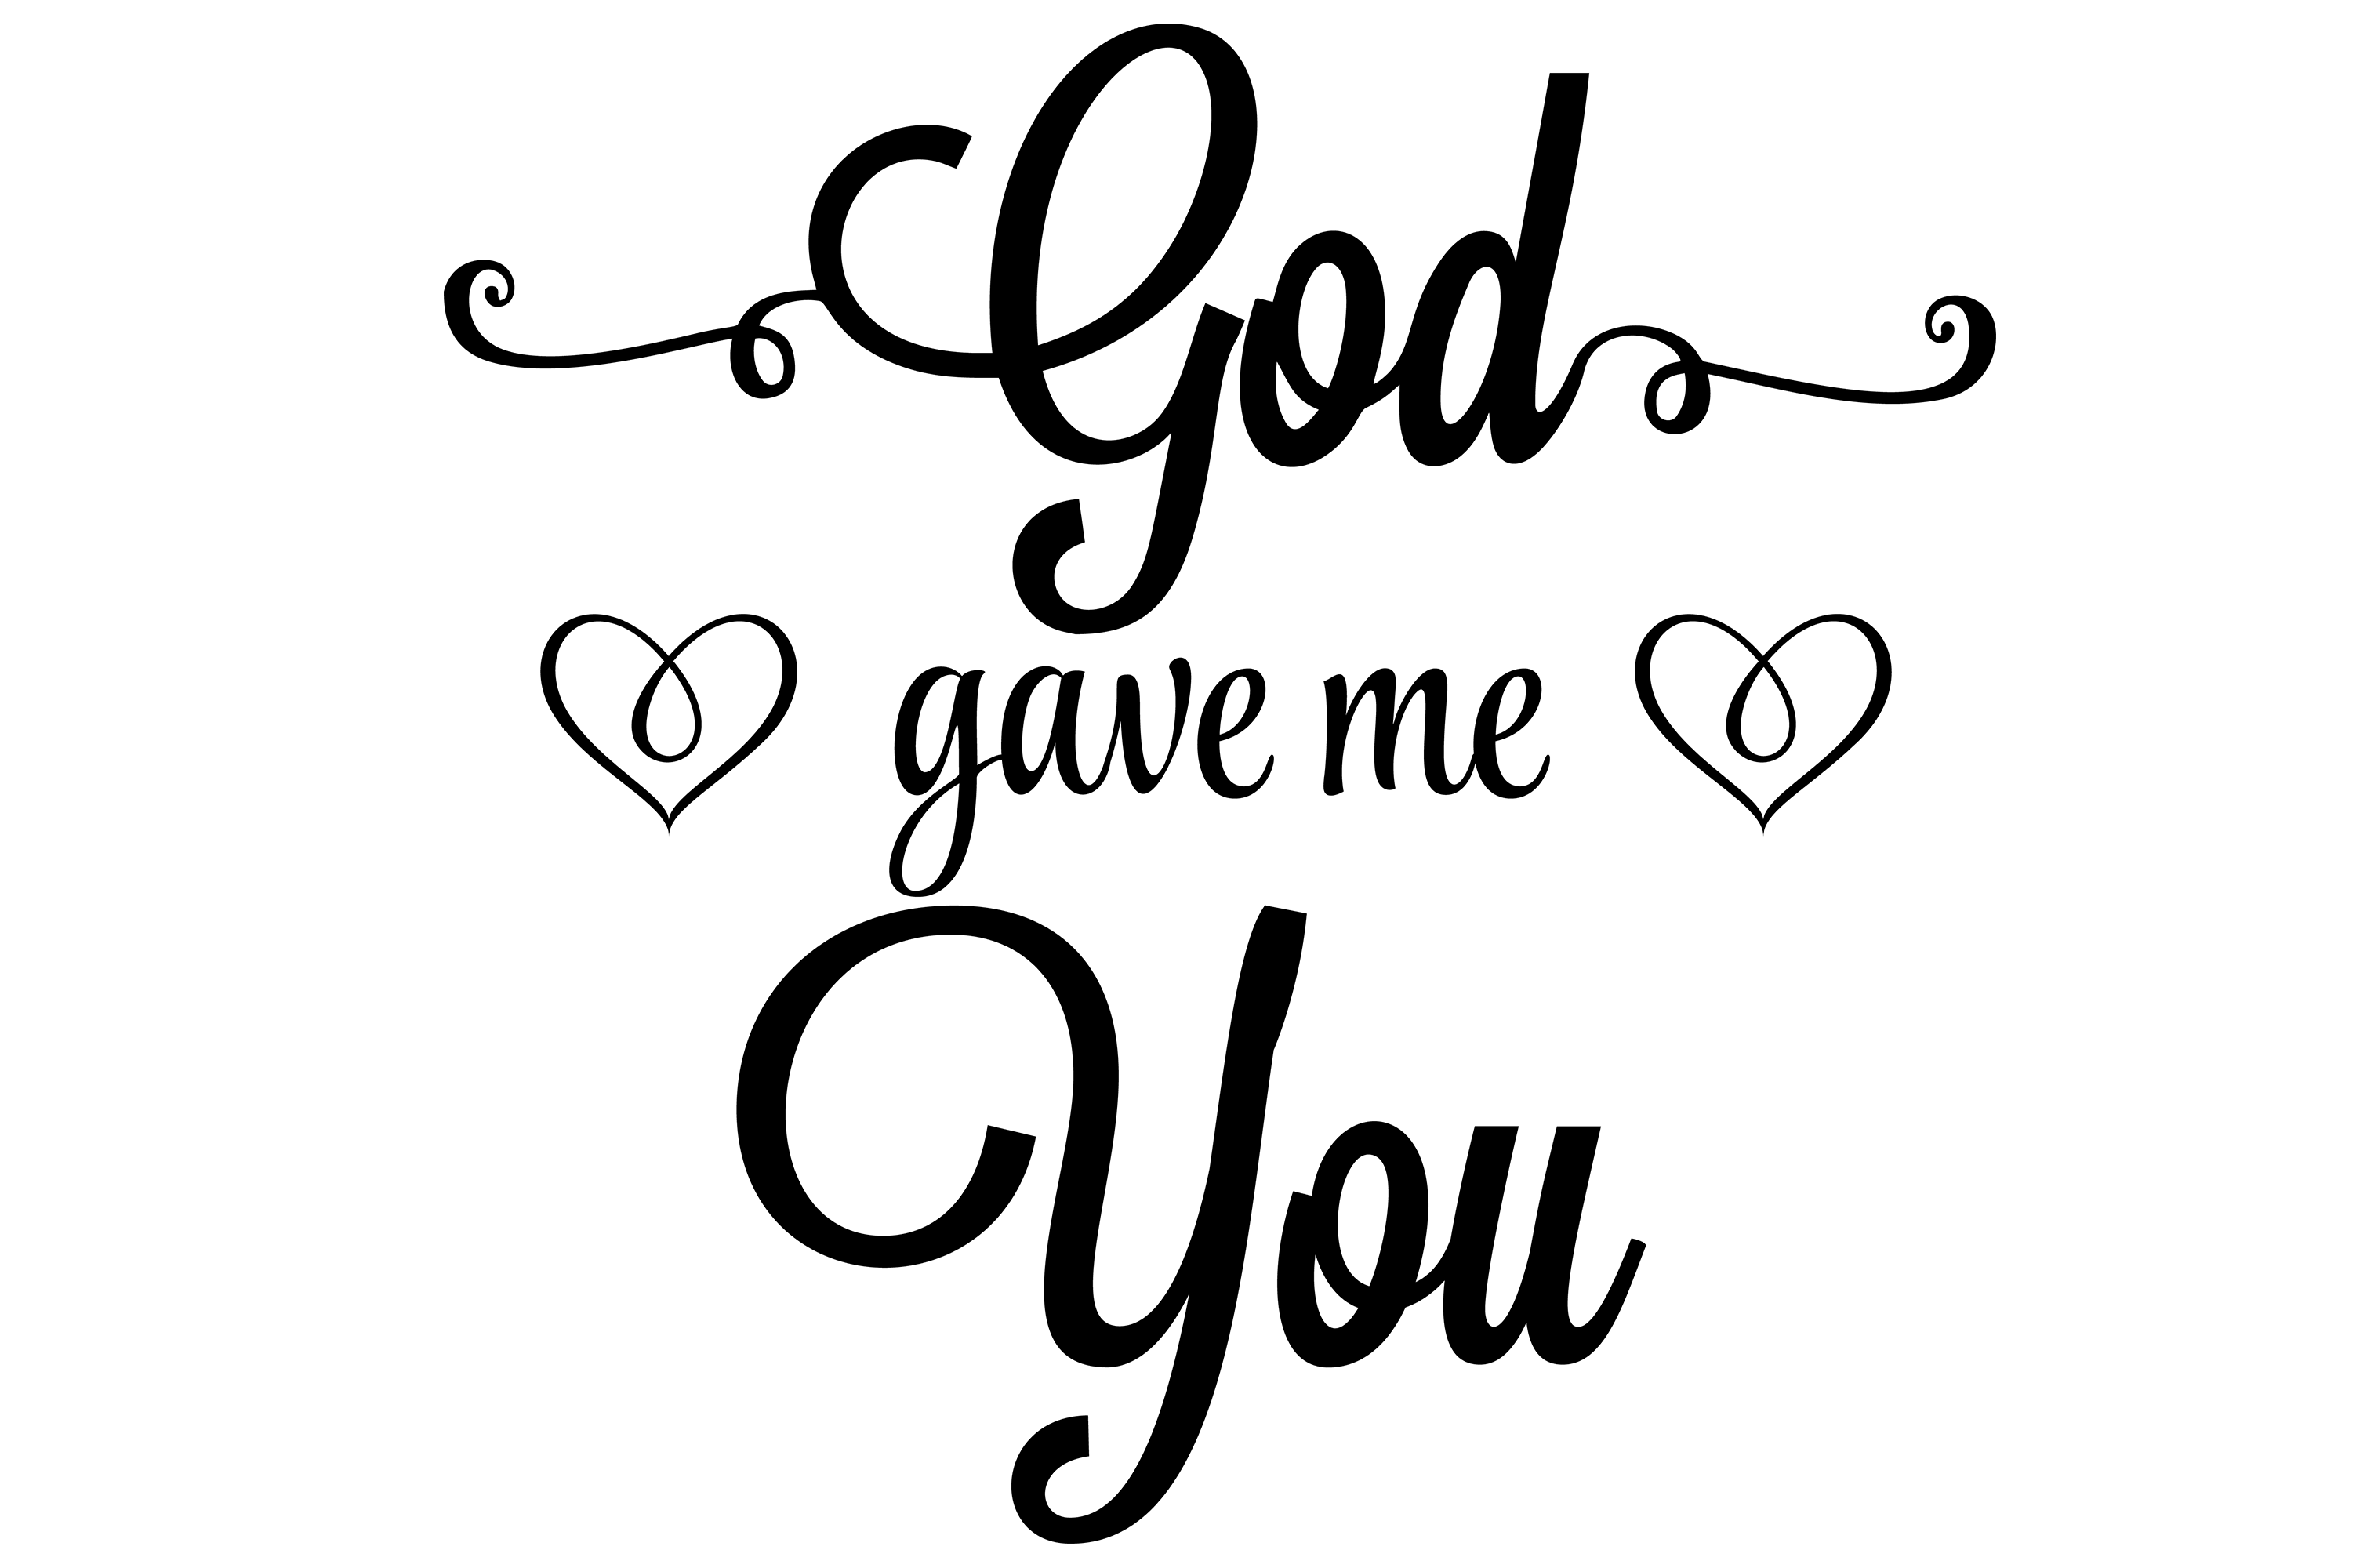 Download Free God Gave Me You Inspirational Quote Graphic By Am Digital for Cricut Explore, Silhouette and other cutting machines.